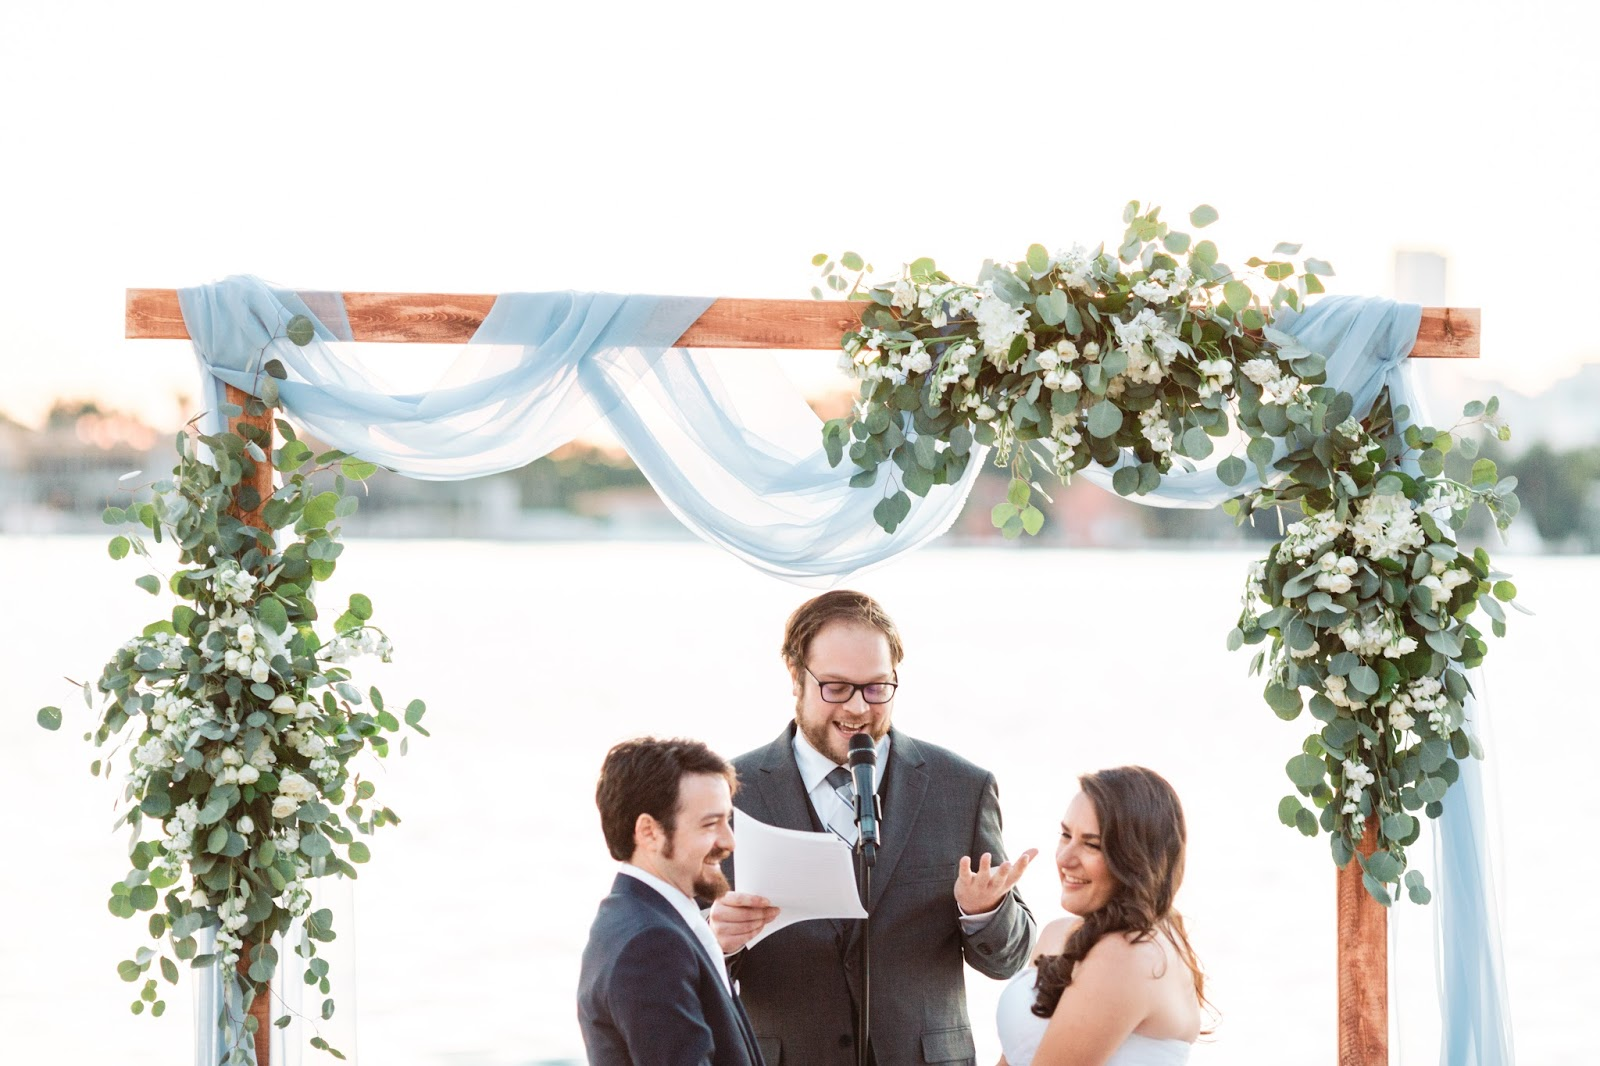 Liz and Lex Events: Tiffany and Jonathan   Married in Miami!